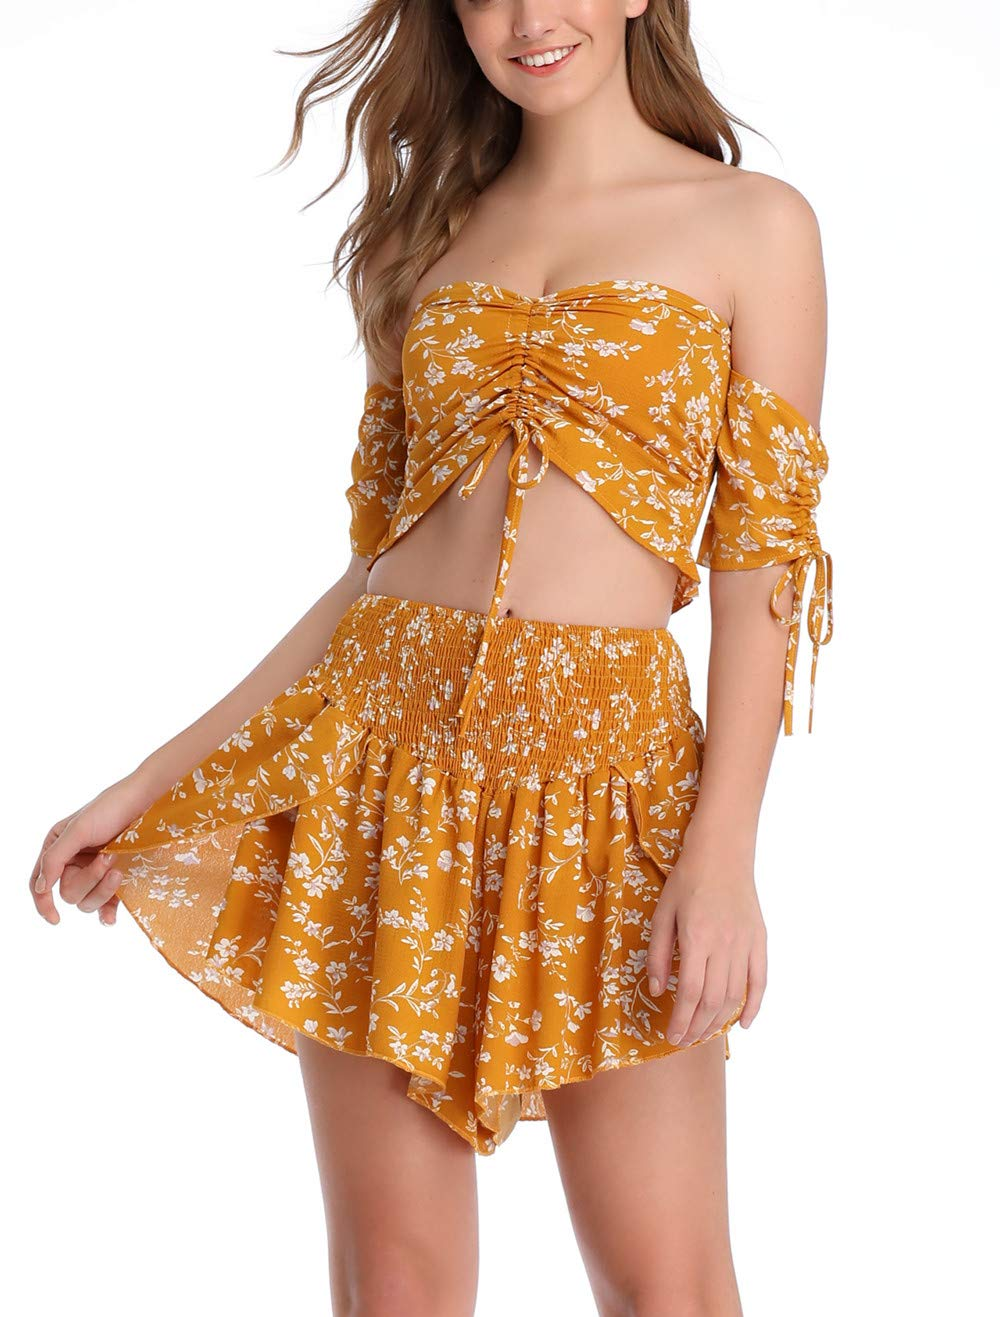 Anienaya Womens Two Piece Outfit Off Shoulder Floral Smocked Drawstring and Crop Top and Shorts Set